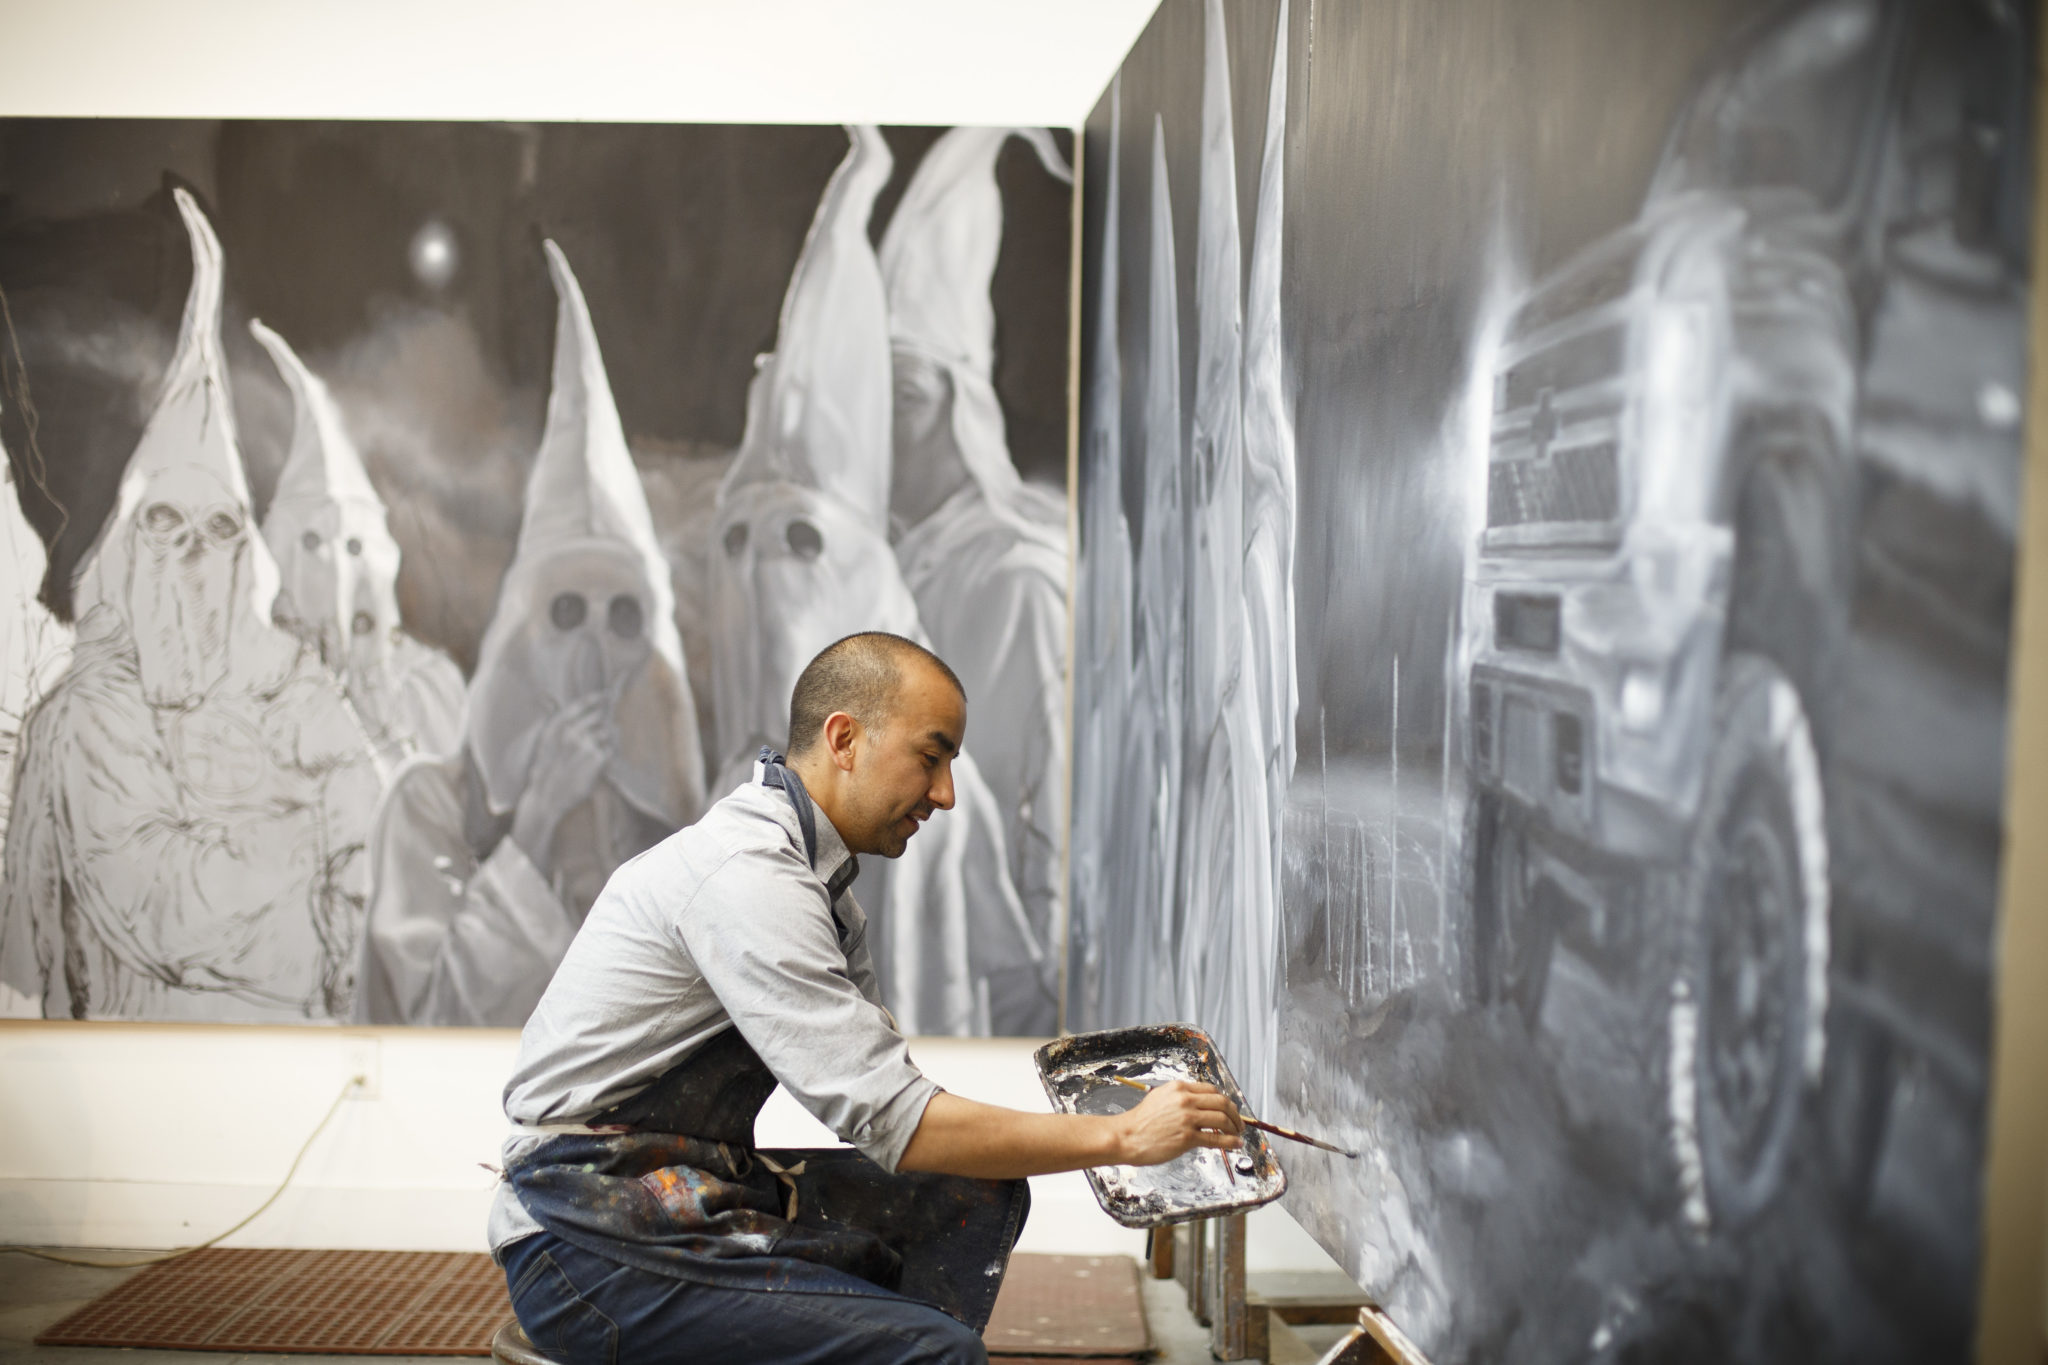 Mexican American artist Vincent Valdez works on his eight-panel painting of modern day klansmen in his studio in San Antonio.